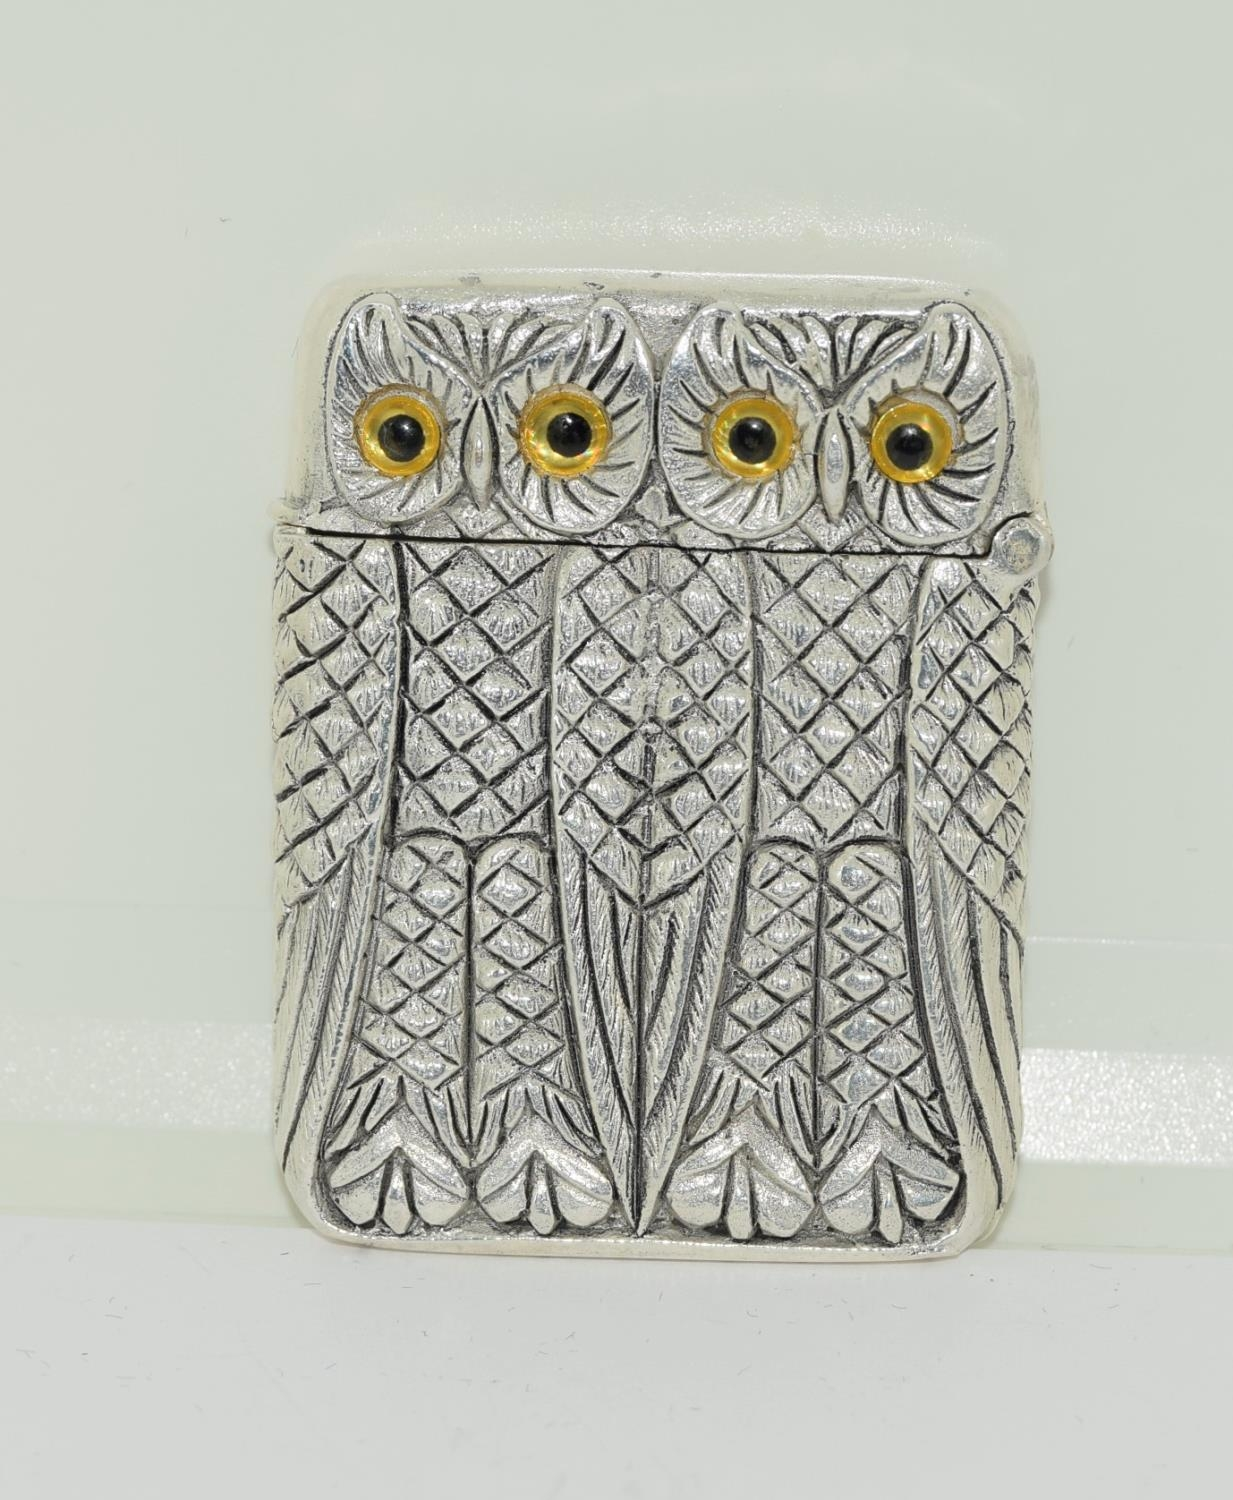 Silver plated owl vesta case - Image 2 of 4